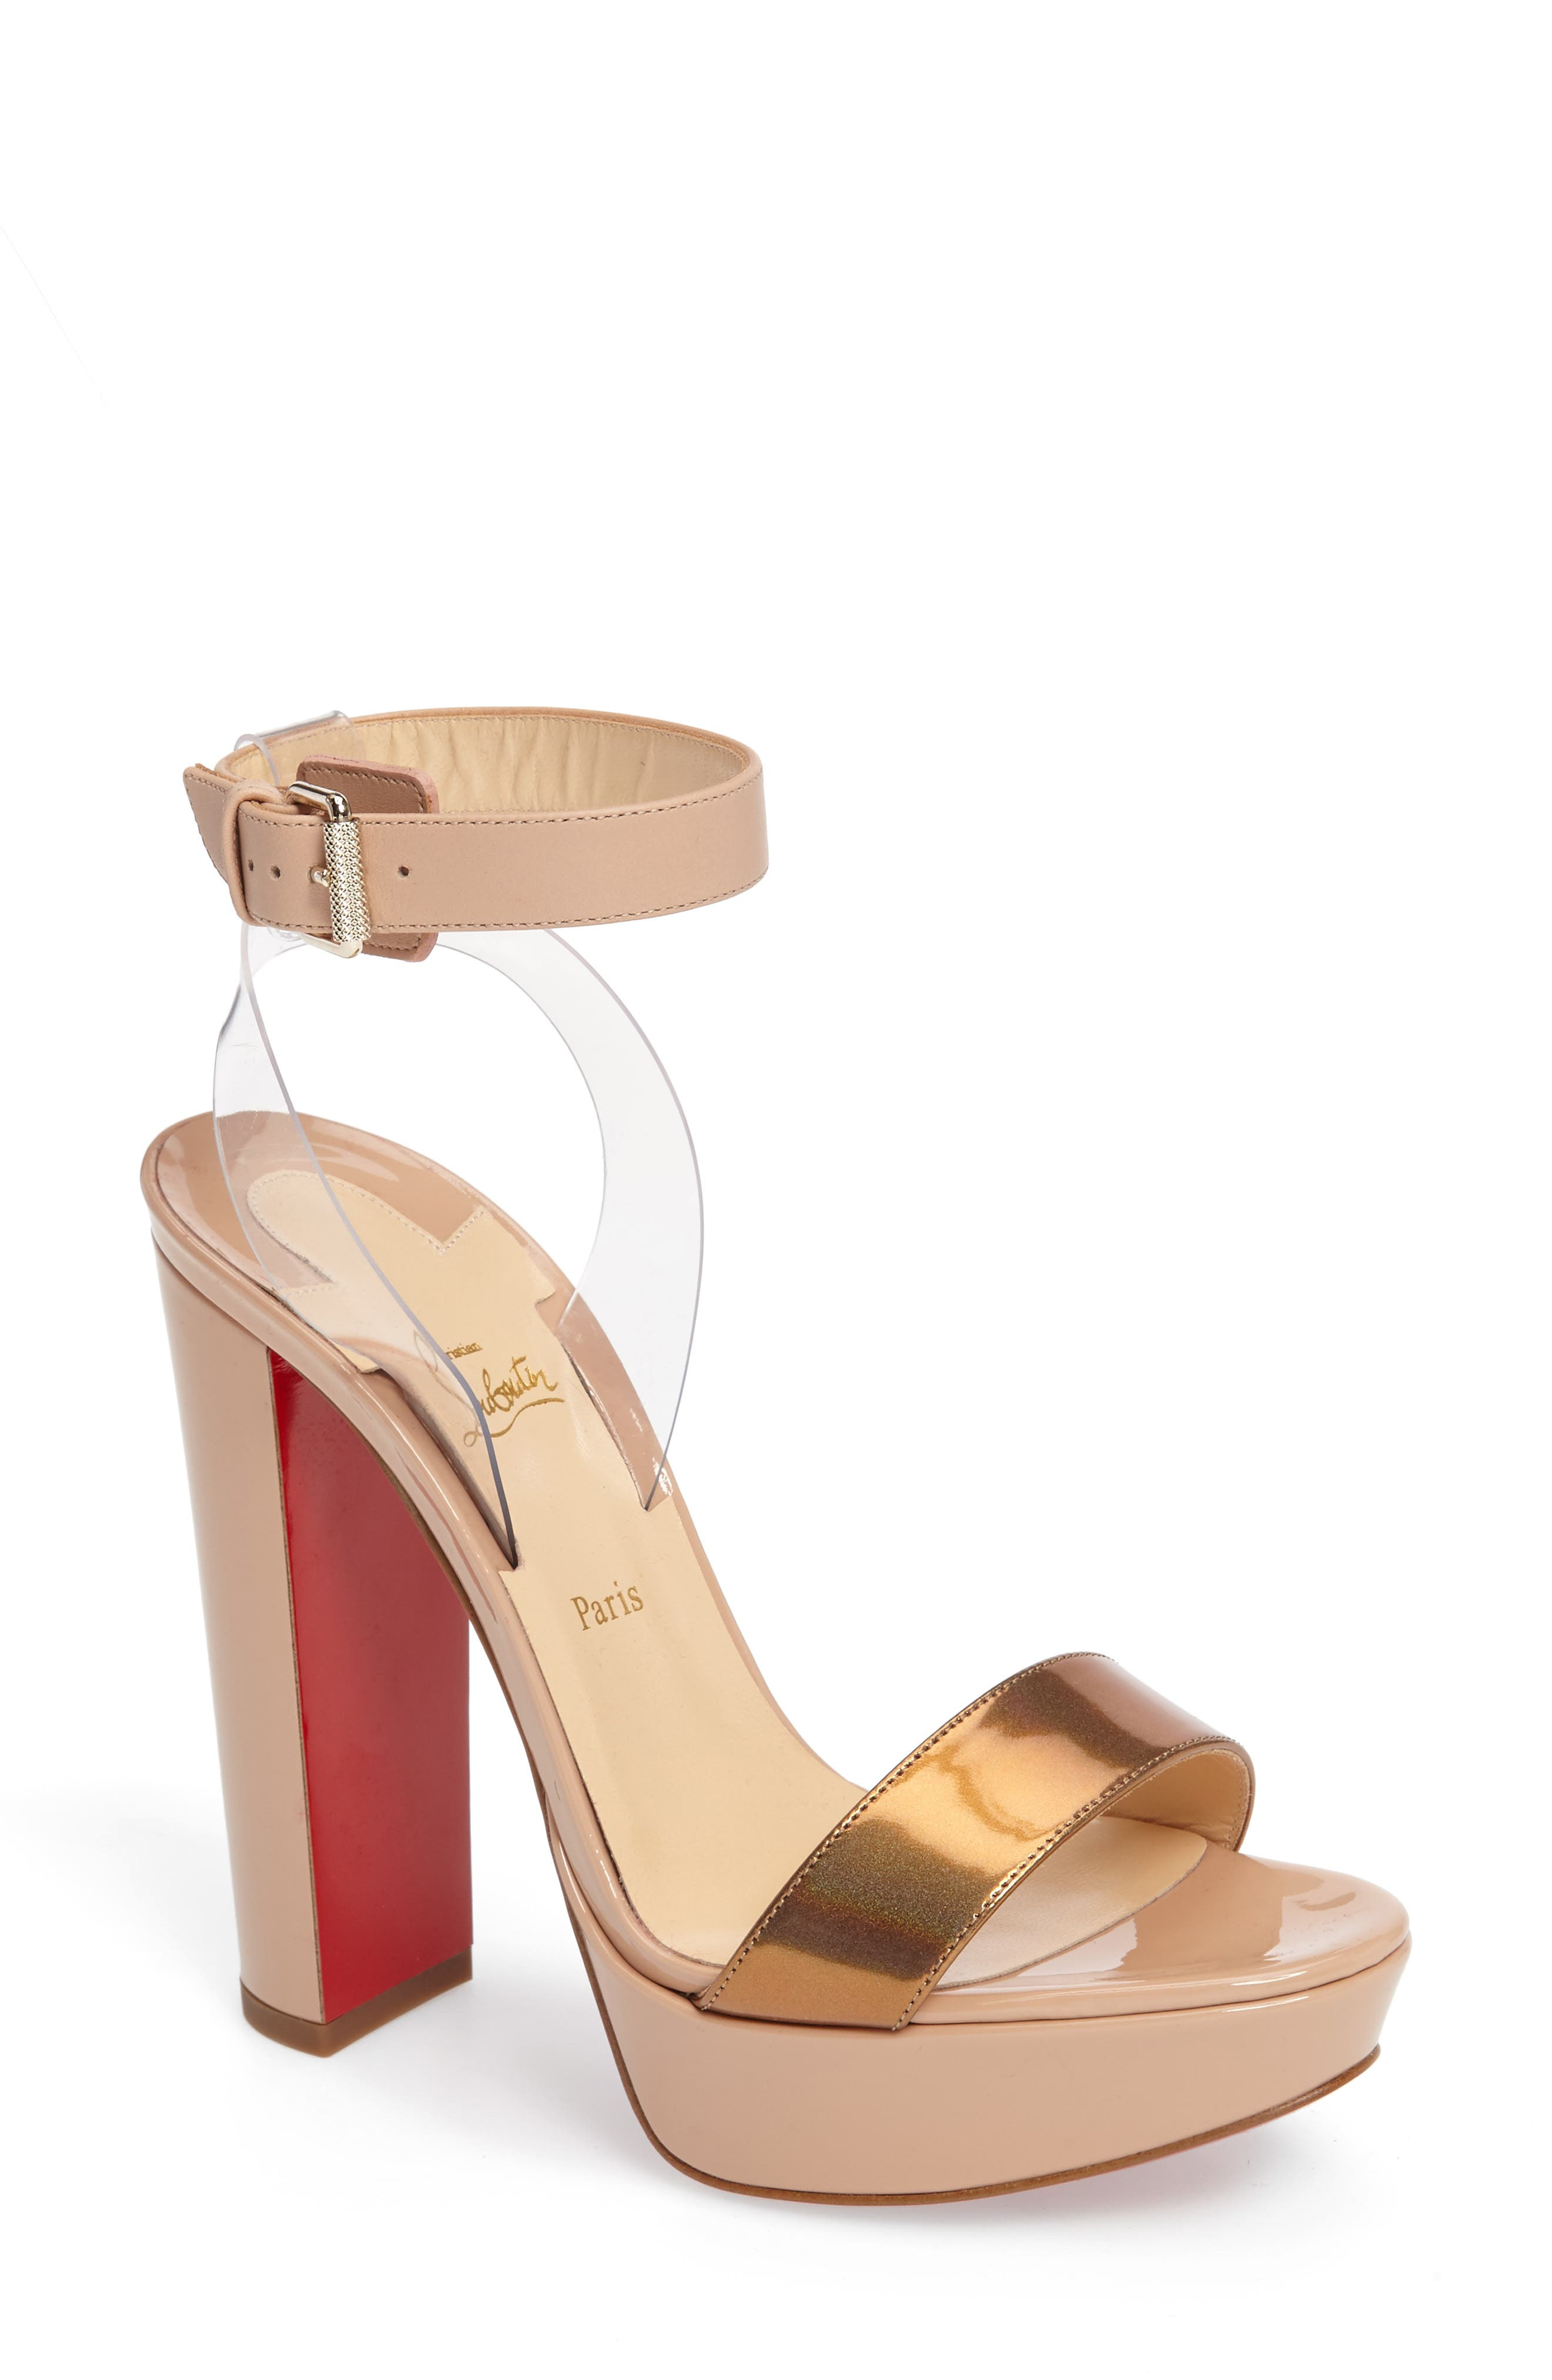 Alternate Image 1 Selected - Christian Louboutin Cherry Sandal (Women)